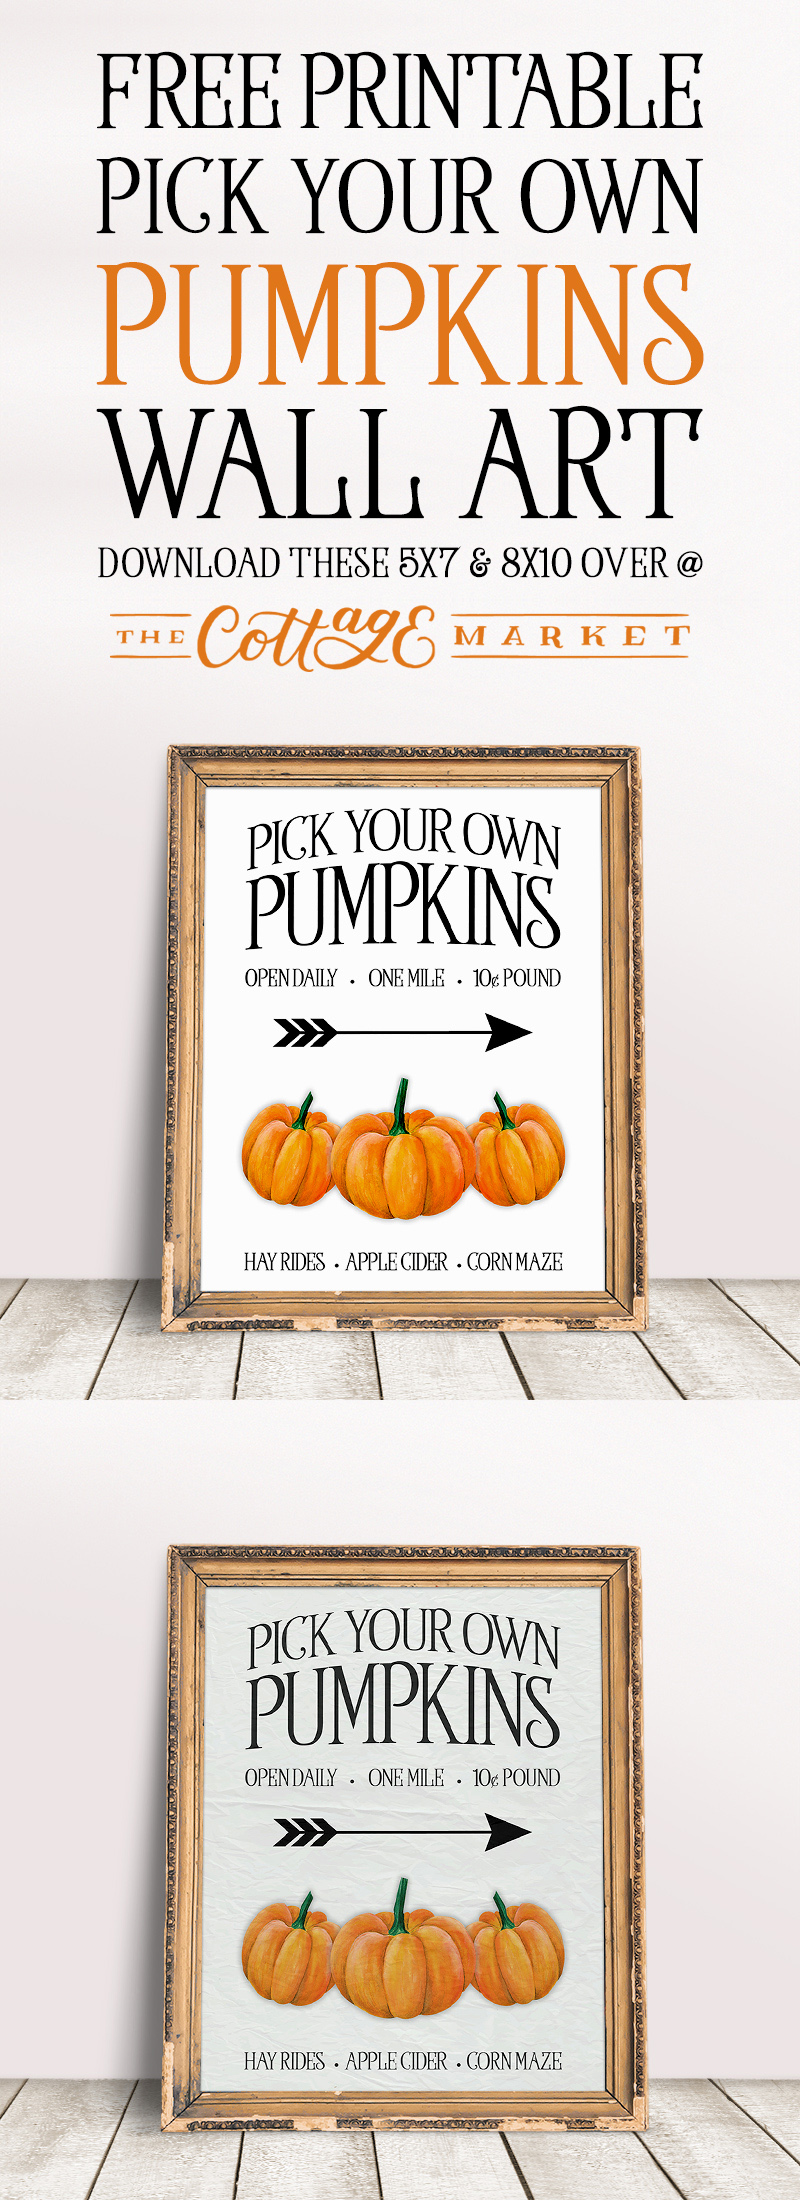 It's time for some Free Printable Pick Your Own Pumpkins Wall Art. It's a great little piece of art that comes in 5X7 and 8X10! Hope you enjoy!